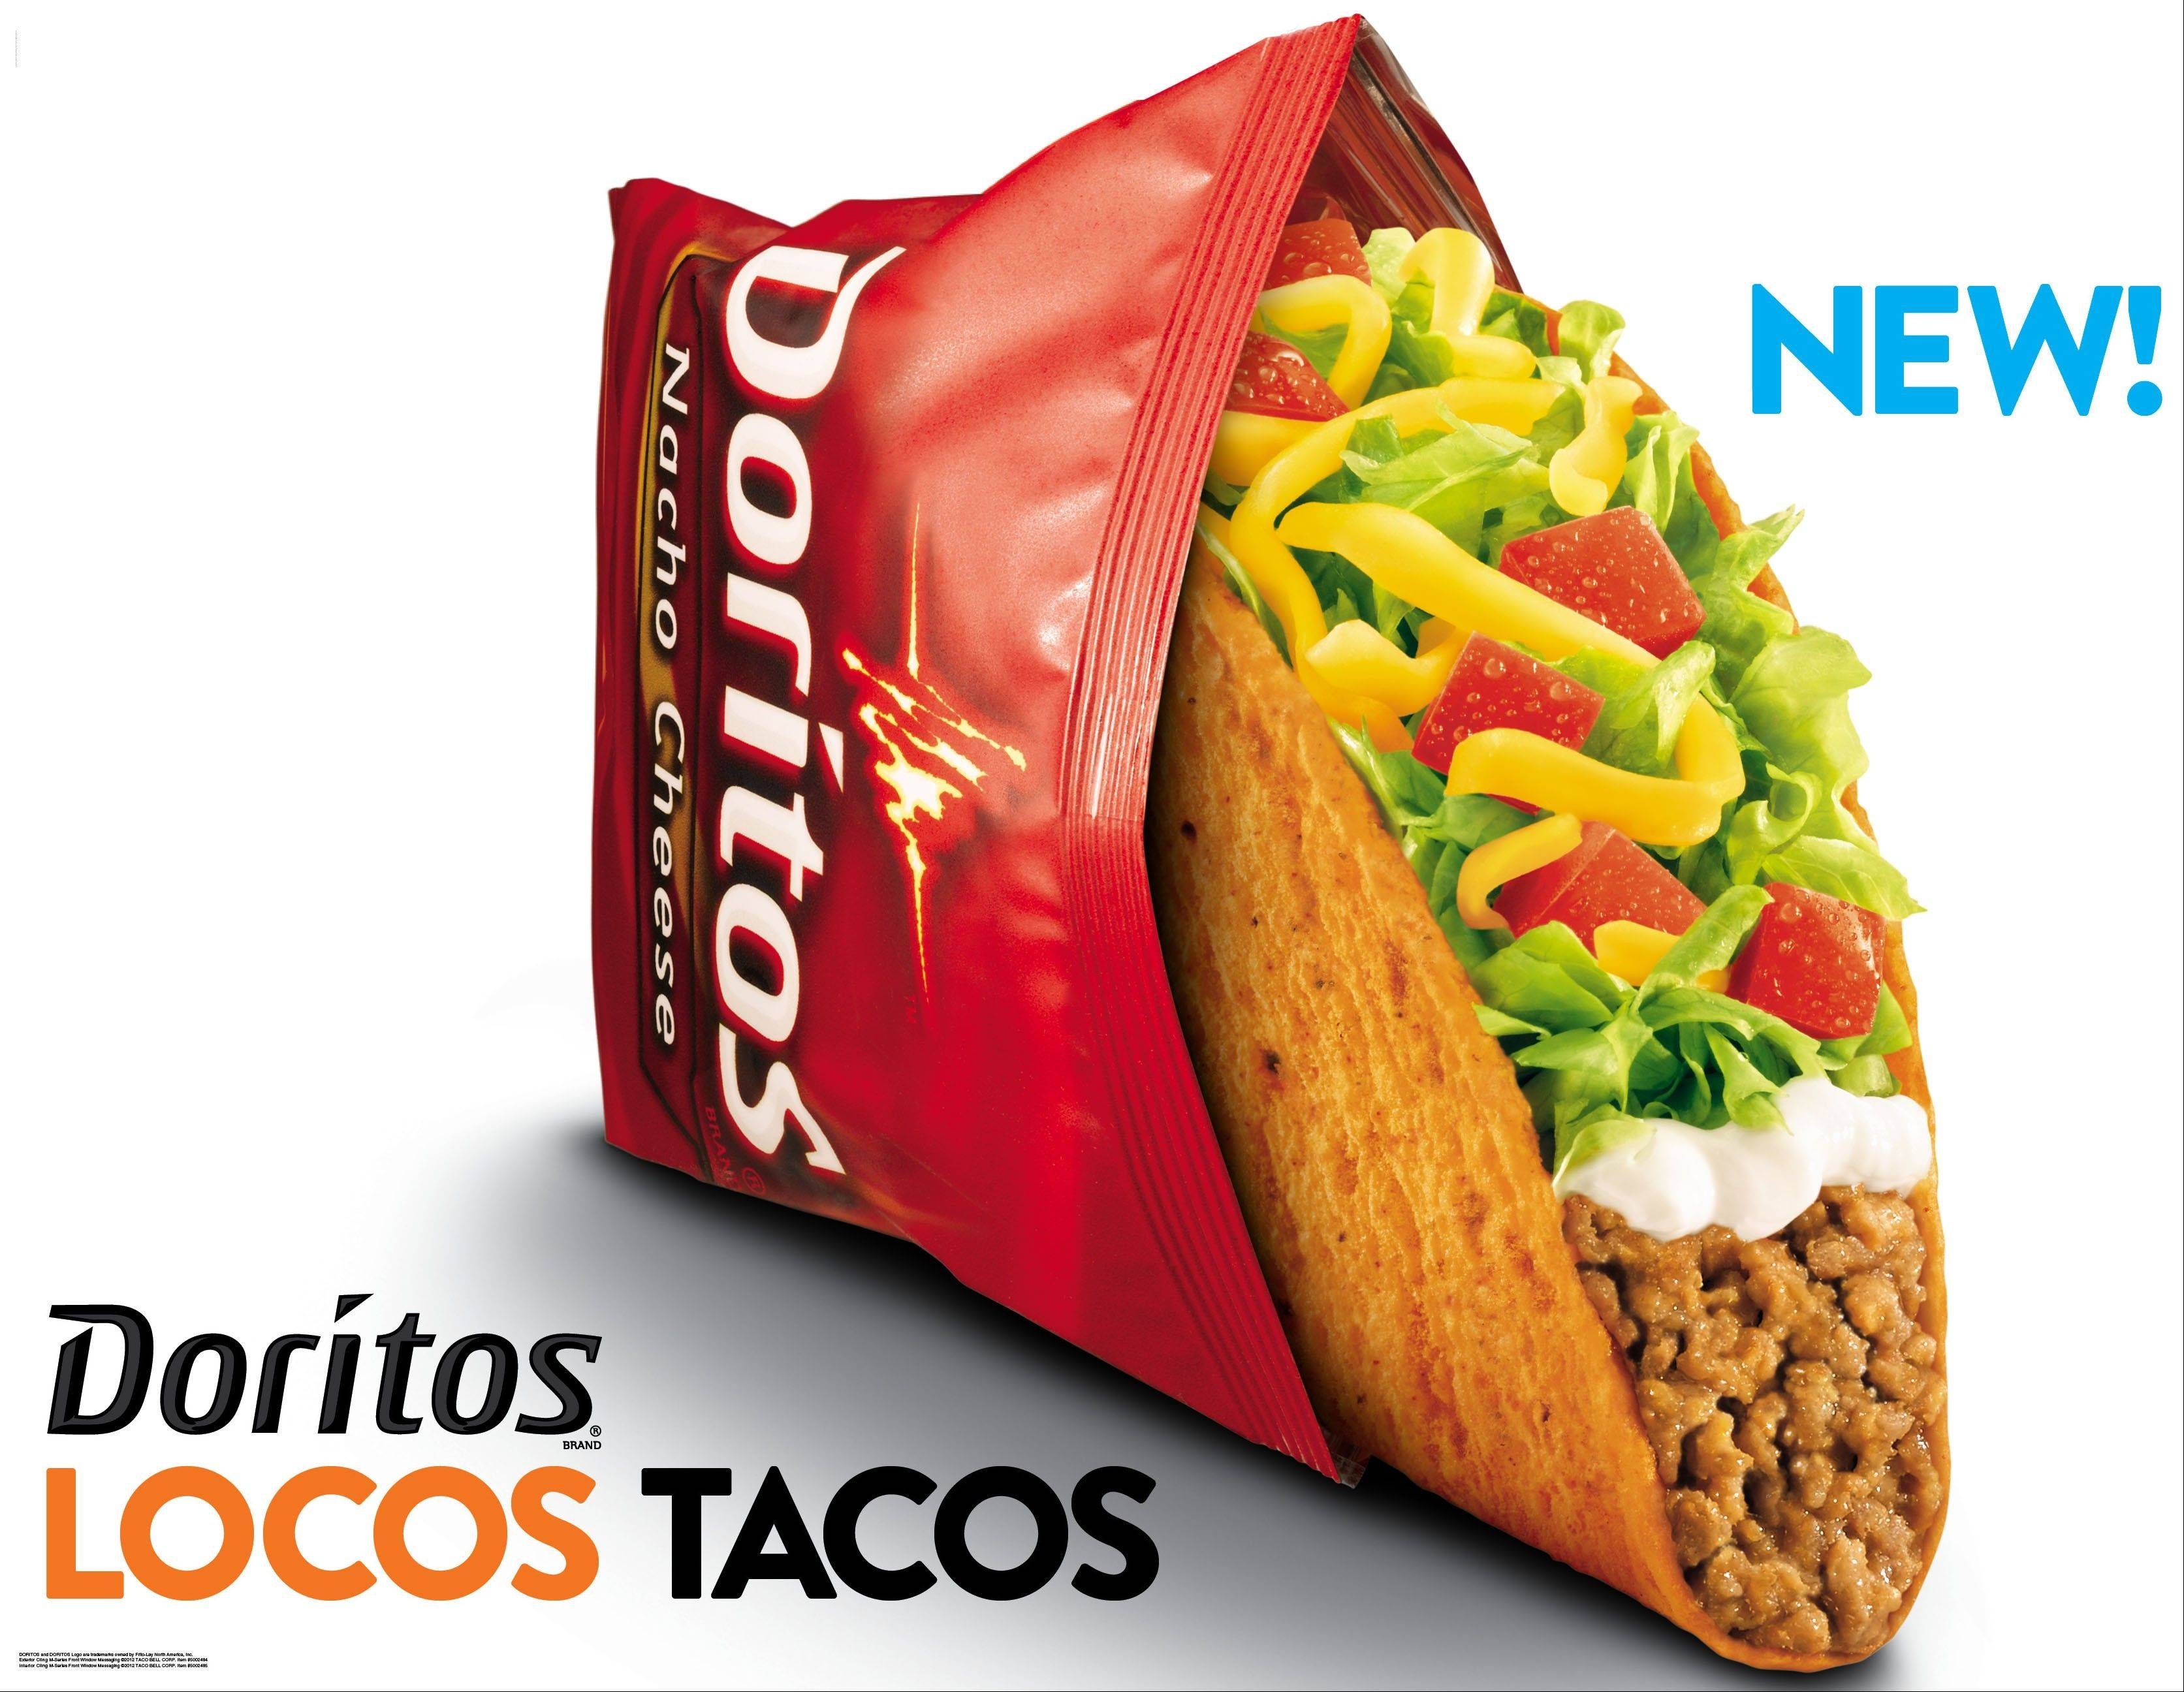 This photo provided by Taco Bell shows a new advertisement for Doritos Locos Tacos shells. PepsiCo Inc., which owns Cheetos, Fritos, Tostitos and other snacks, found enormous success in 2012 after teaming up with Taco Bell to create Dorito-flavored taco shells. And it has since been looking for other ways to create restaurant dishes featuring its popular snack.